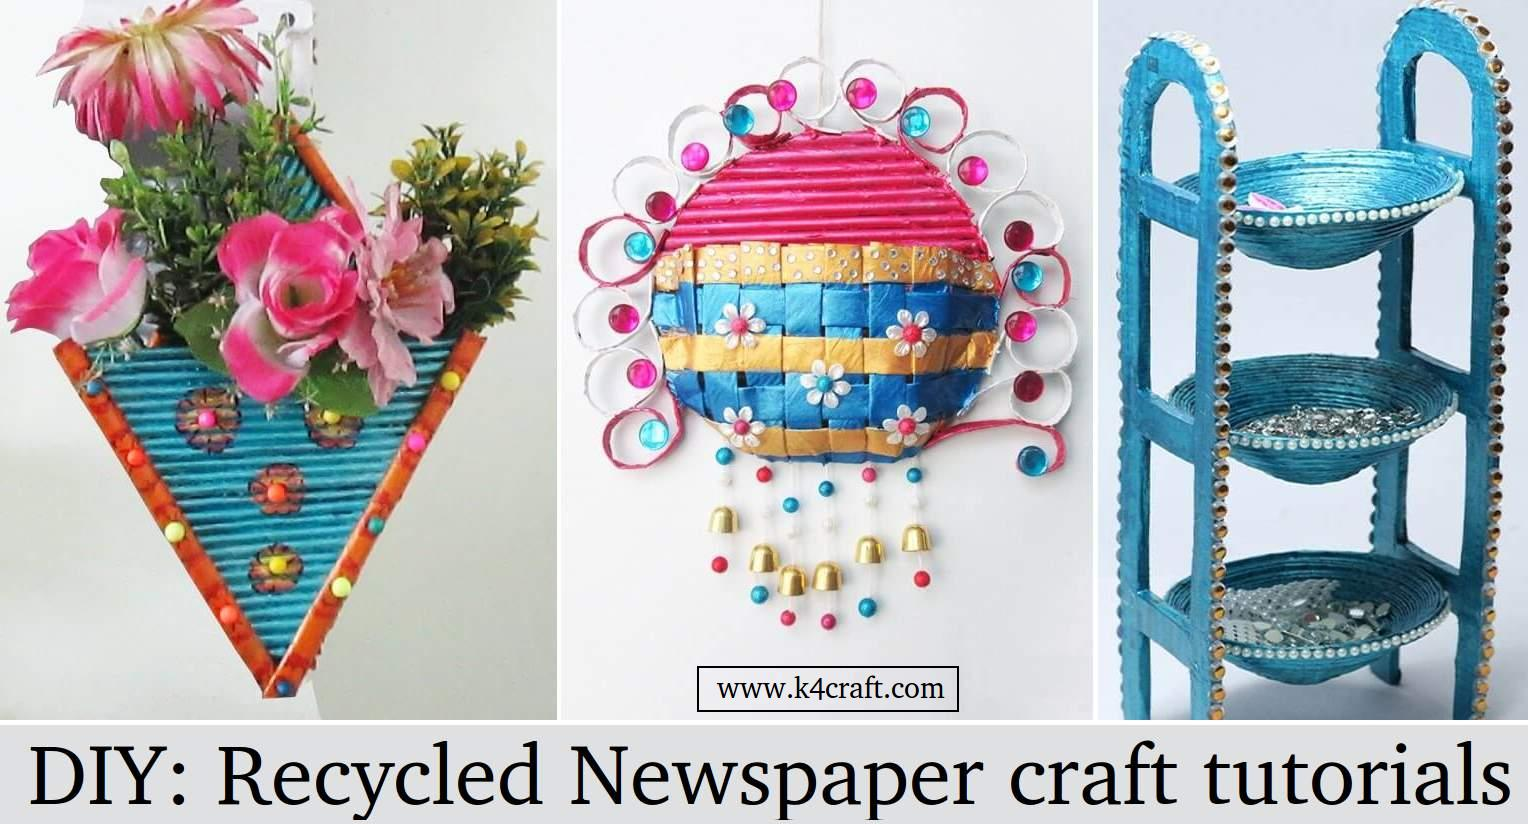 Craft tutorials from Old Newspapers & Magazines - Step by step